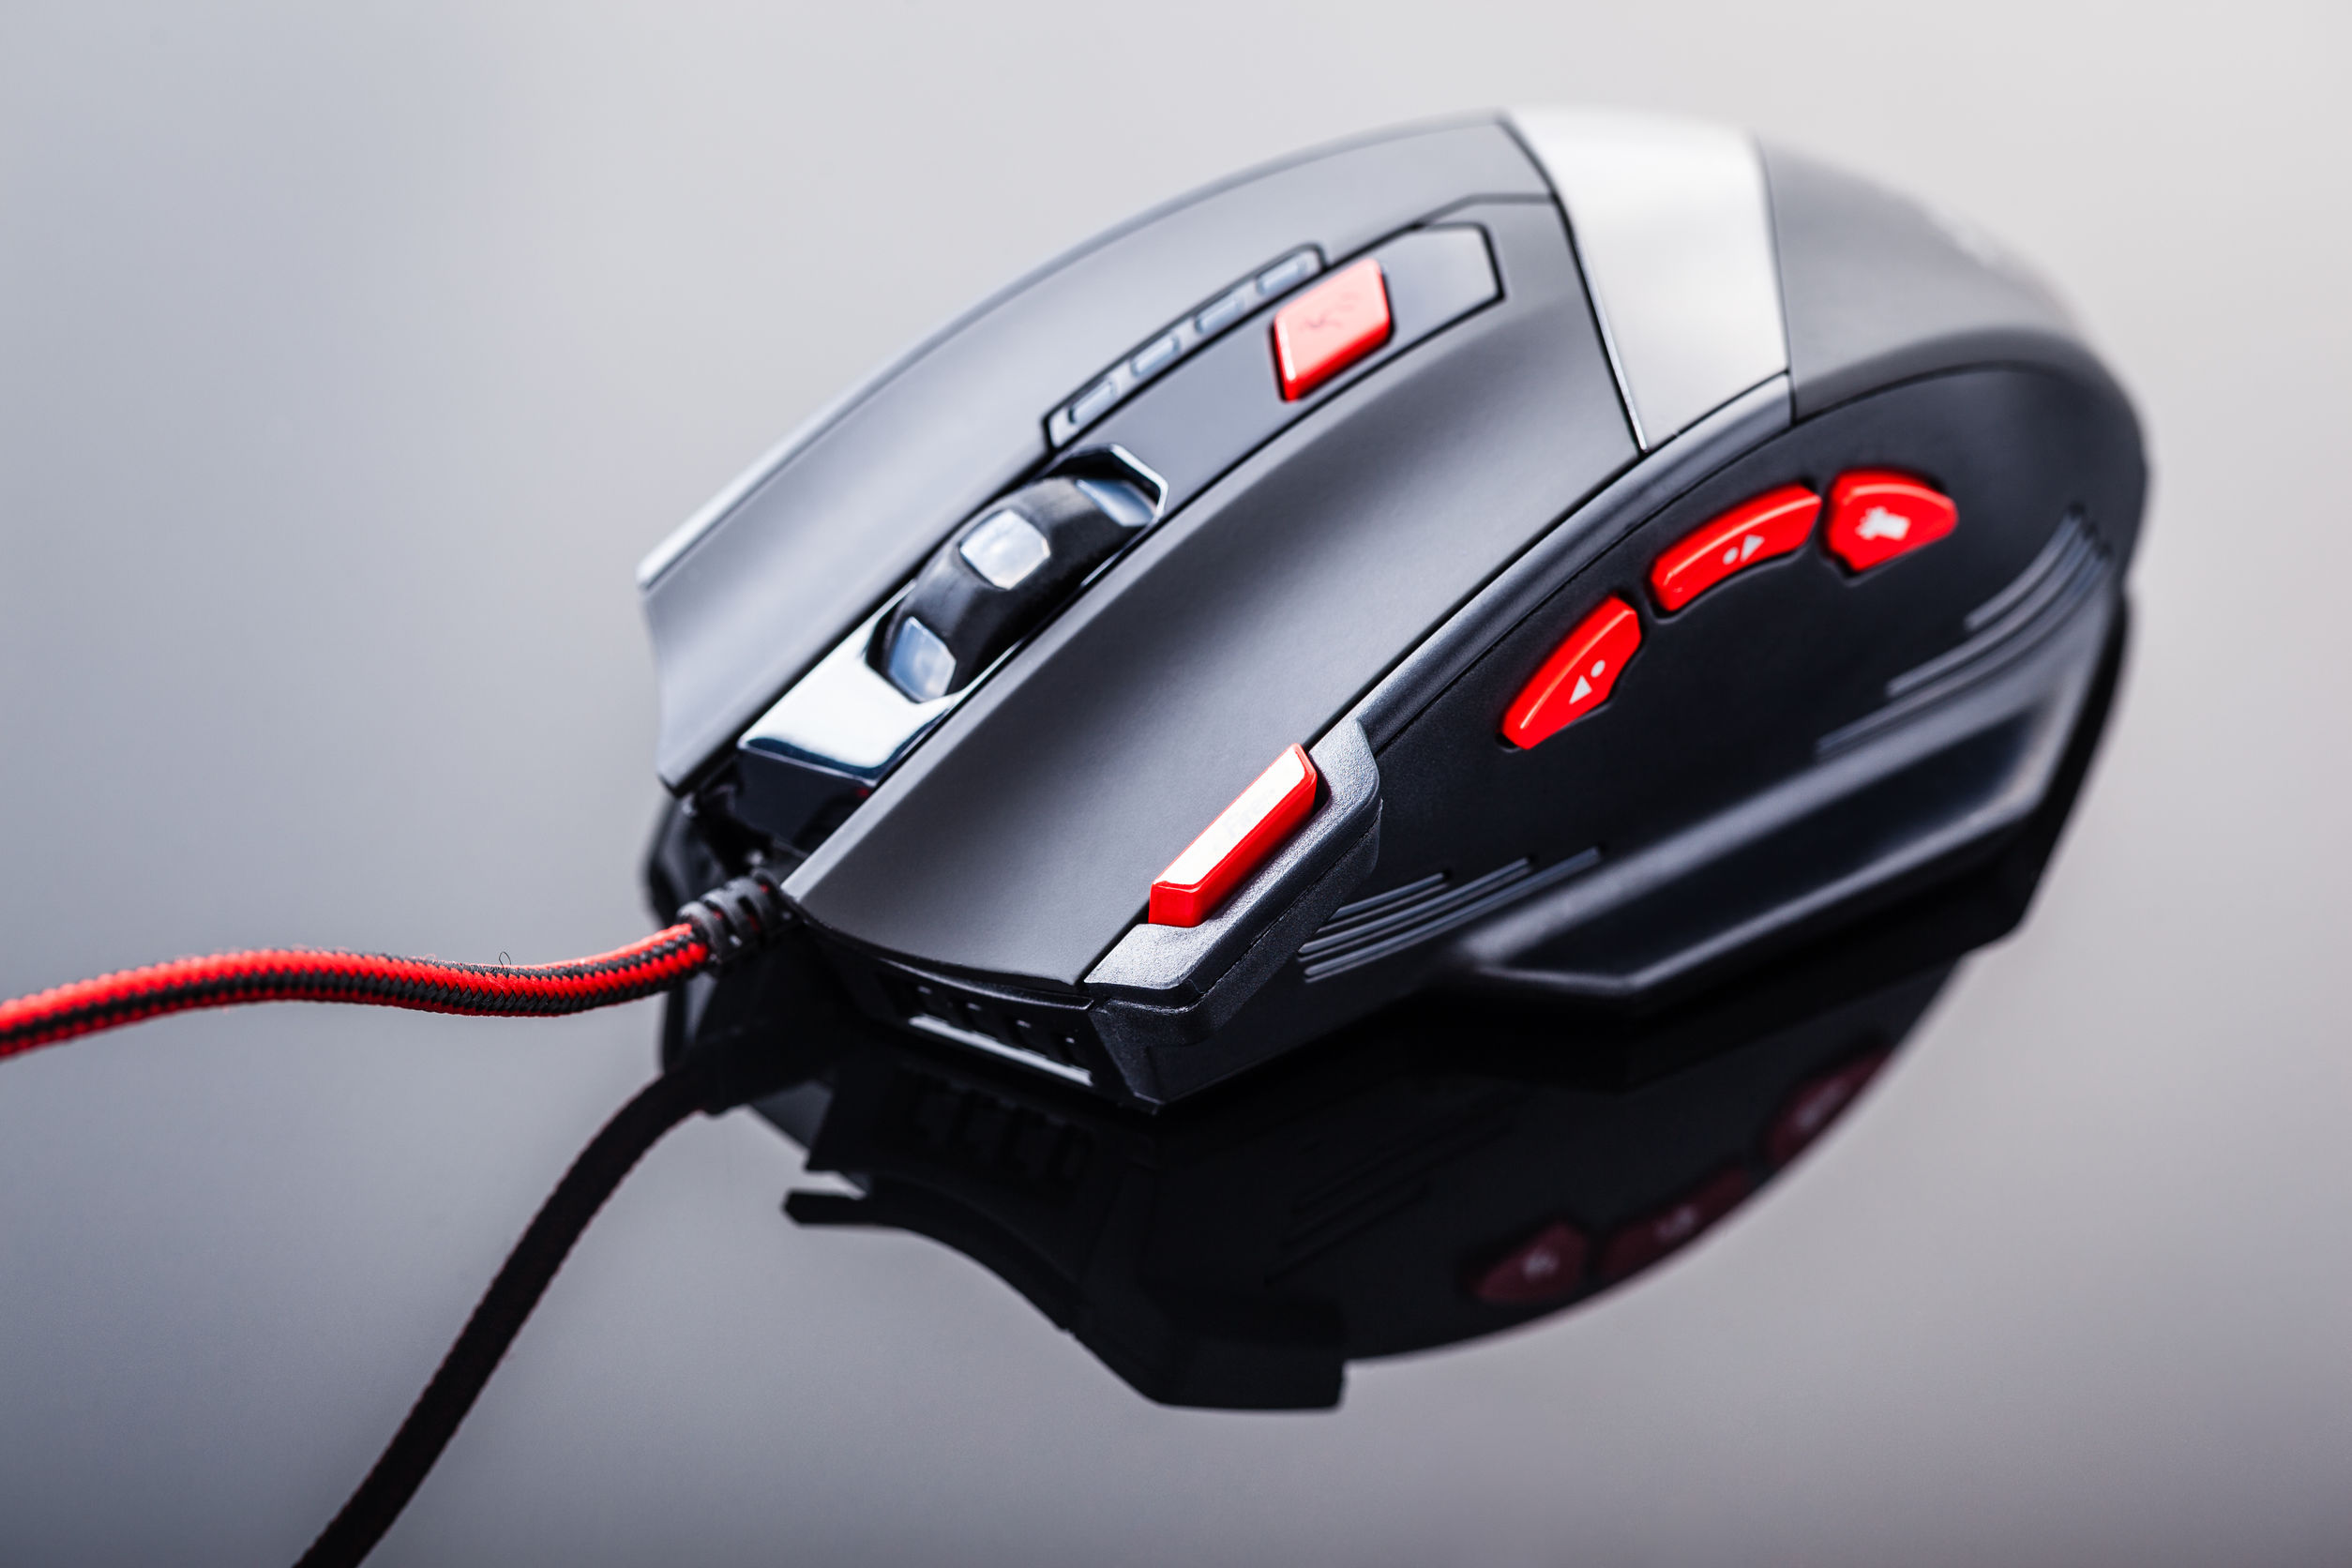 Best Gaming Mouse 2021: Shopping Guide & Review